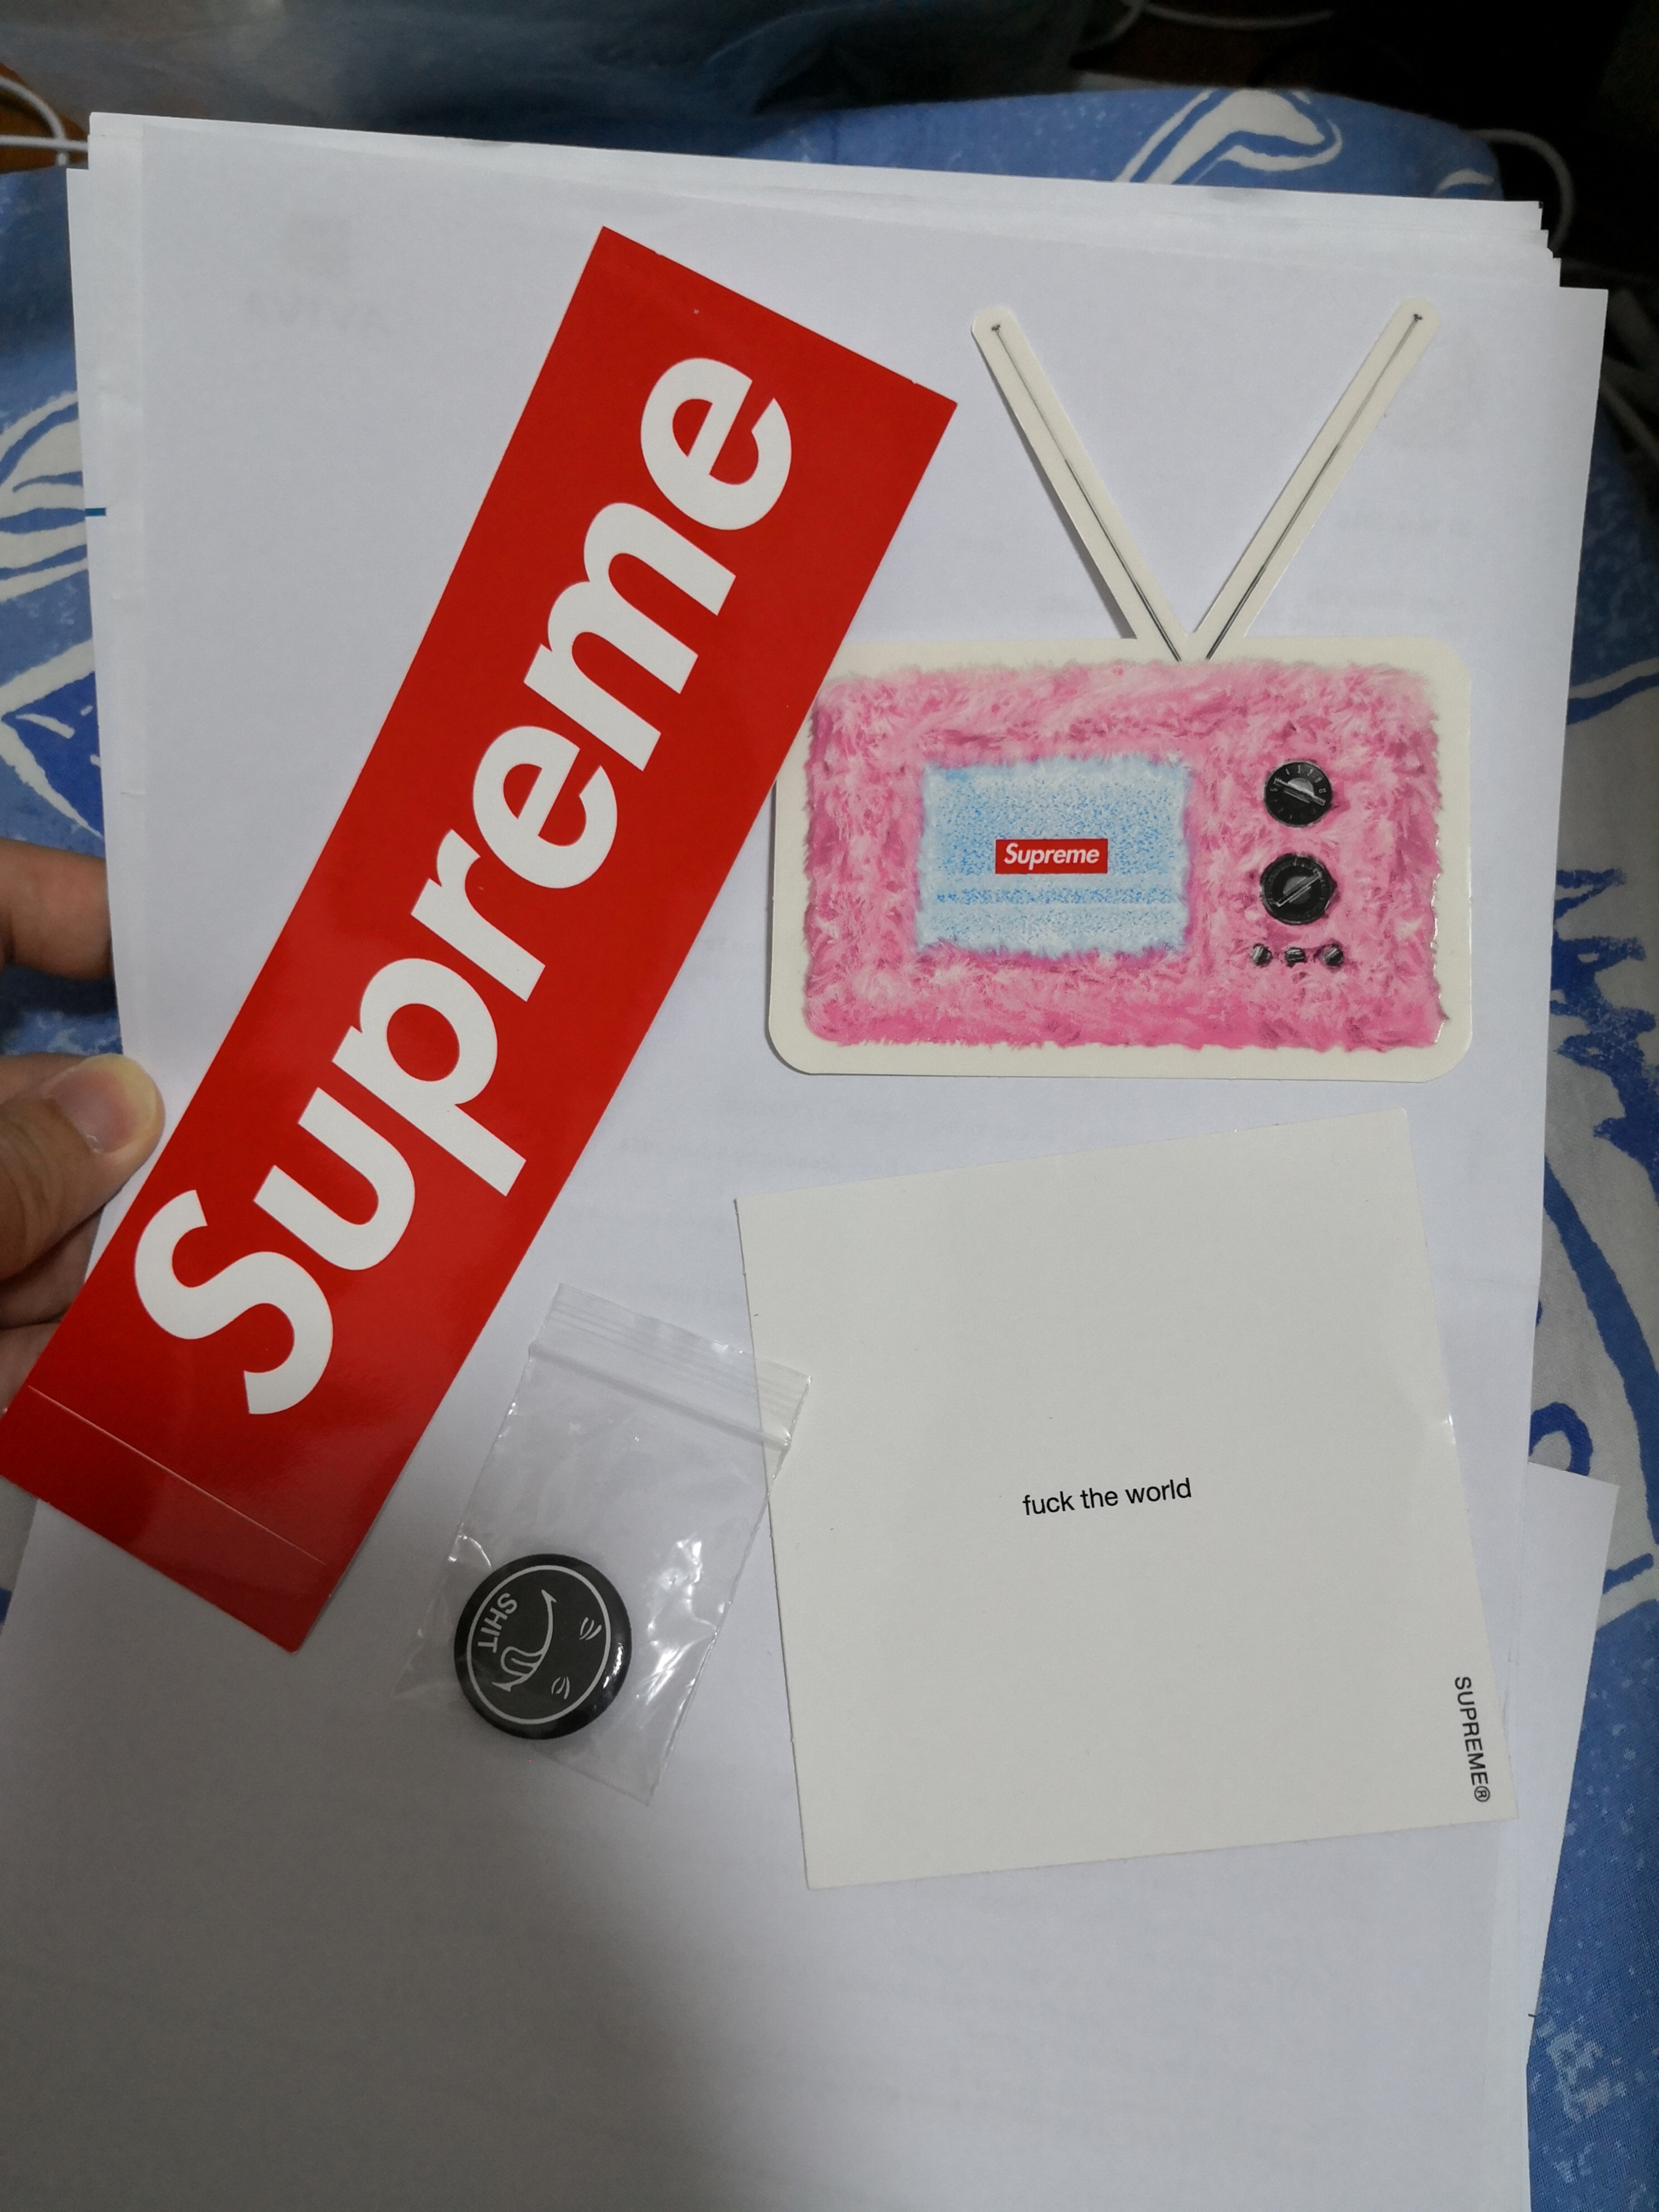 Supreme Sticker Pack 2018 Bahuma 50pcs Red Stickers Source 6 Luxury Accessories Others On Carousell